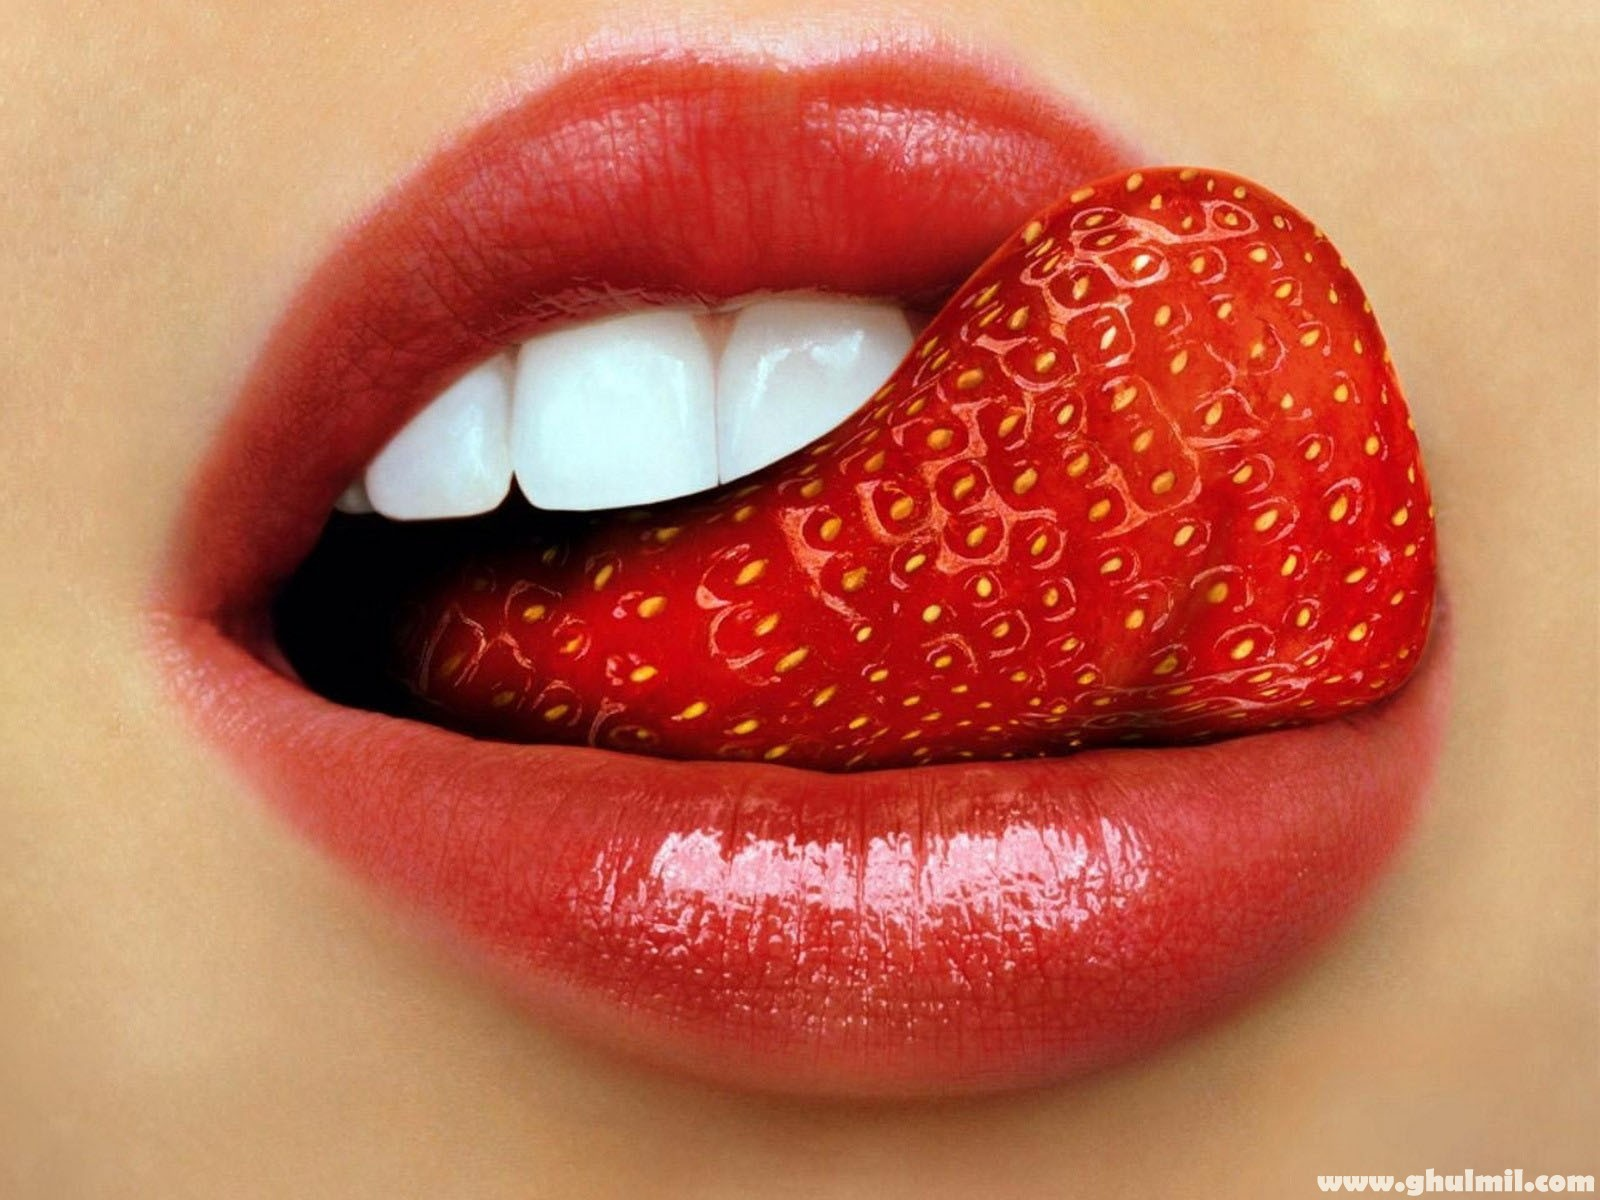 strawberry christian singles Do you want to have a relationship you have to sign up on this dating site and get free goal of developing personal and romantic relationships.